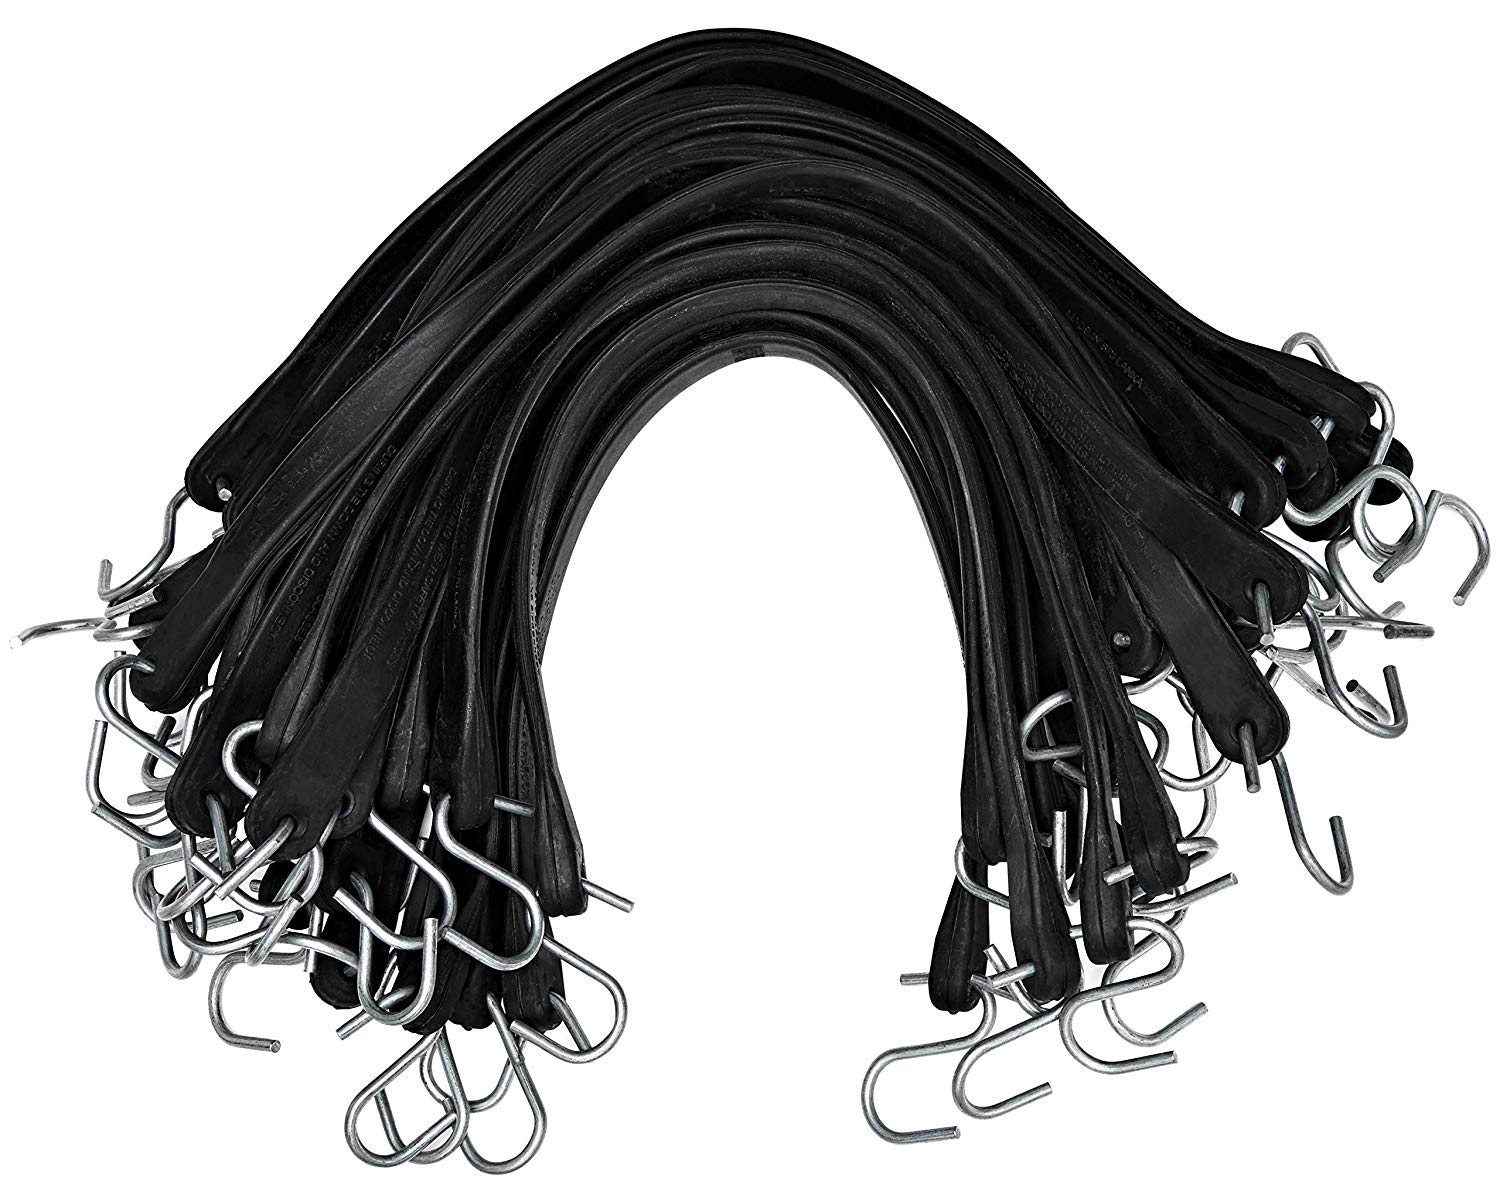 23 max Stretch kitchentoolz Rubber Tarp Straps 15 Pack of 50 Heavy-Duty Natural Rubber Bungee Cords with Hooks